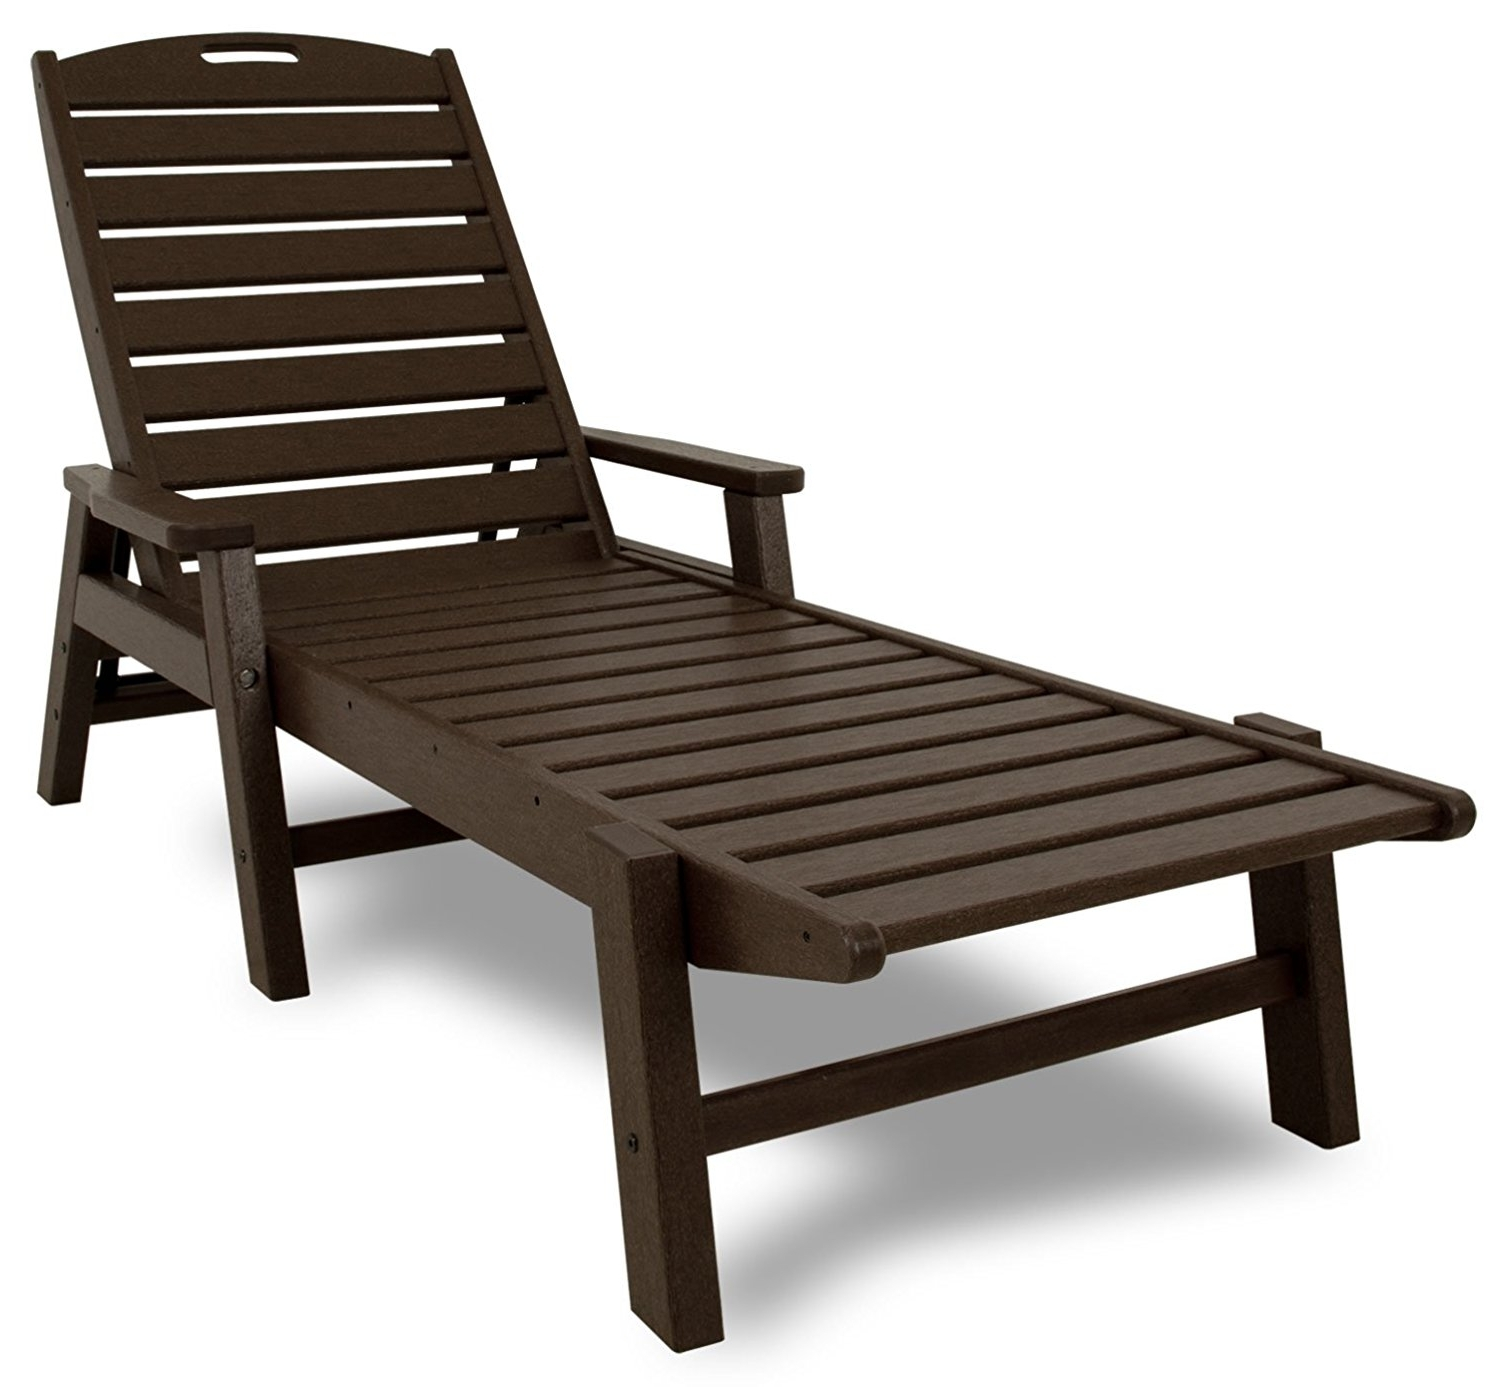 Widely Used Amazon : Polywood Ncc2280Ma Nautical Chaise With Arms With Regard To Chaise Lounge Chairs (View 15 of 15)